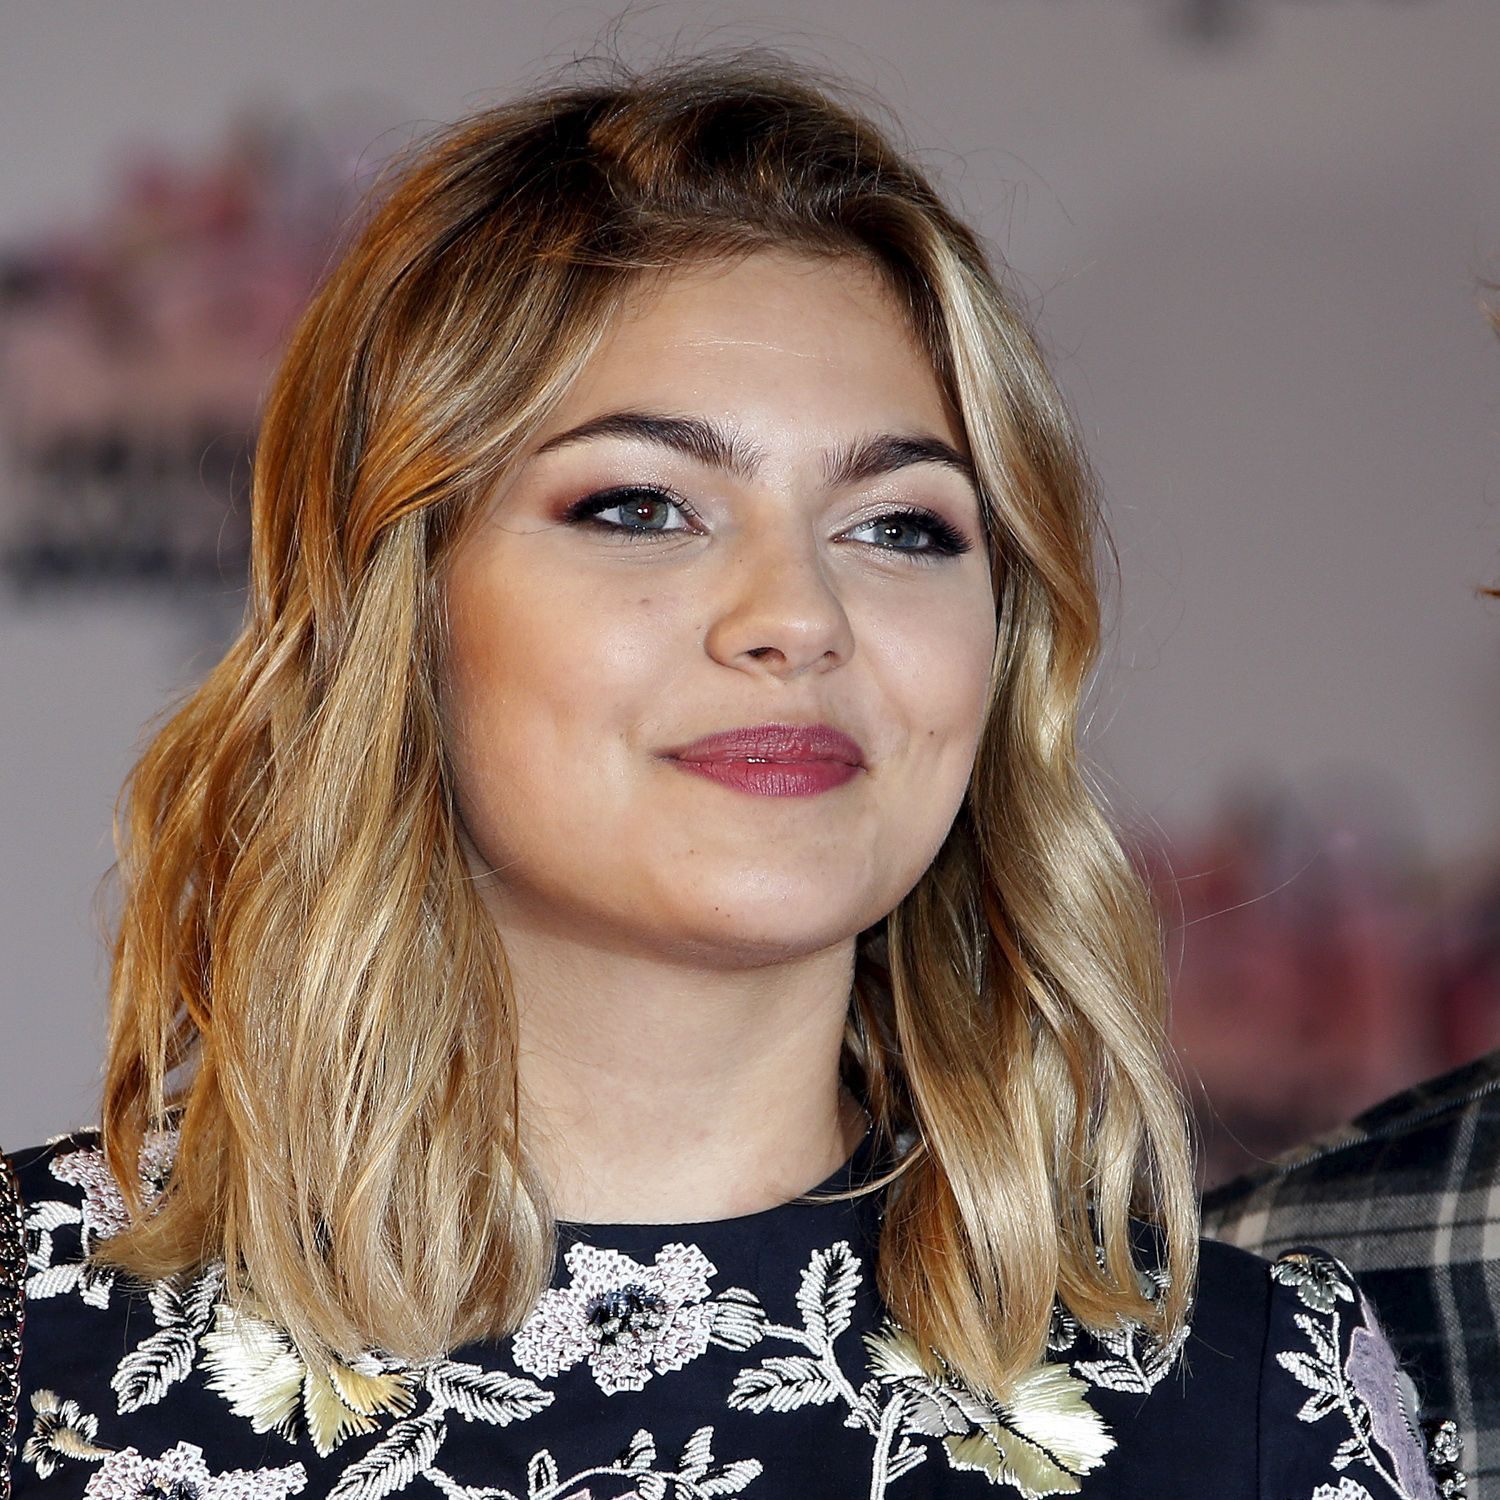 Louane Emera - Paris Match